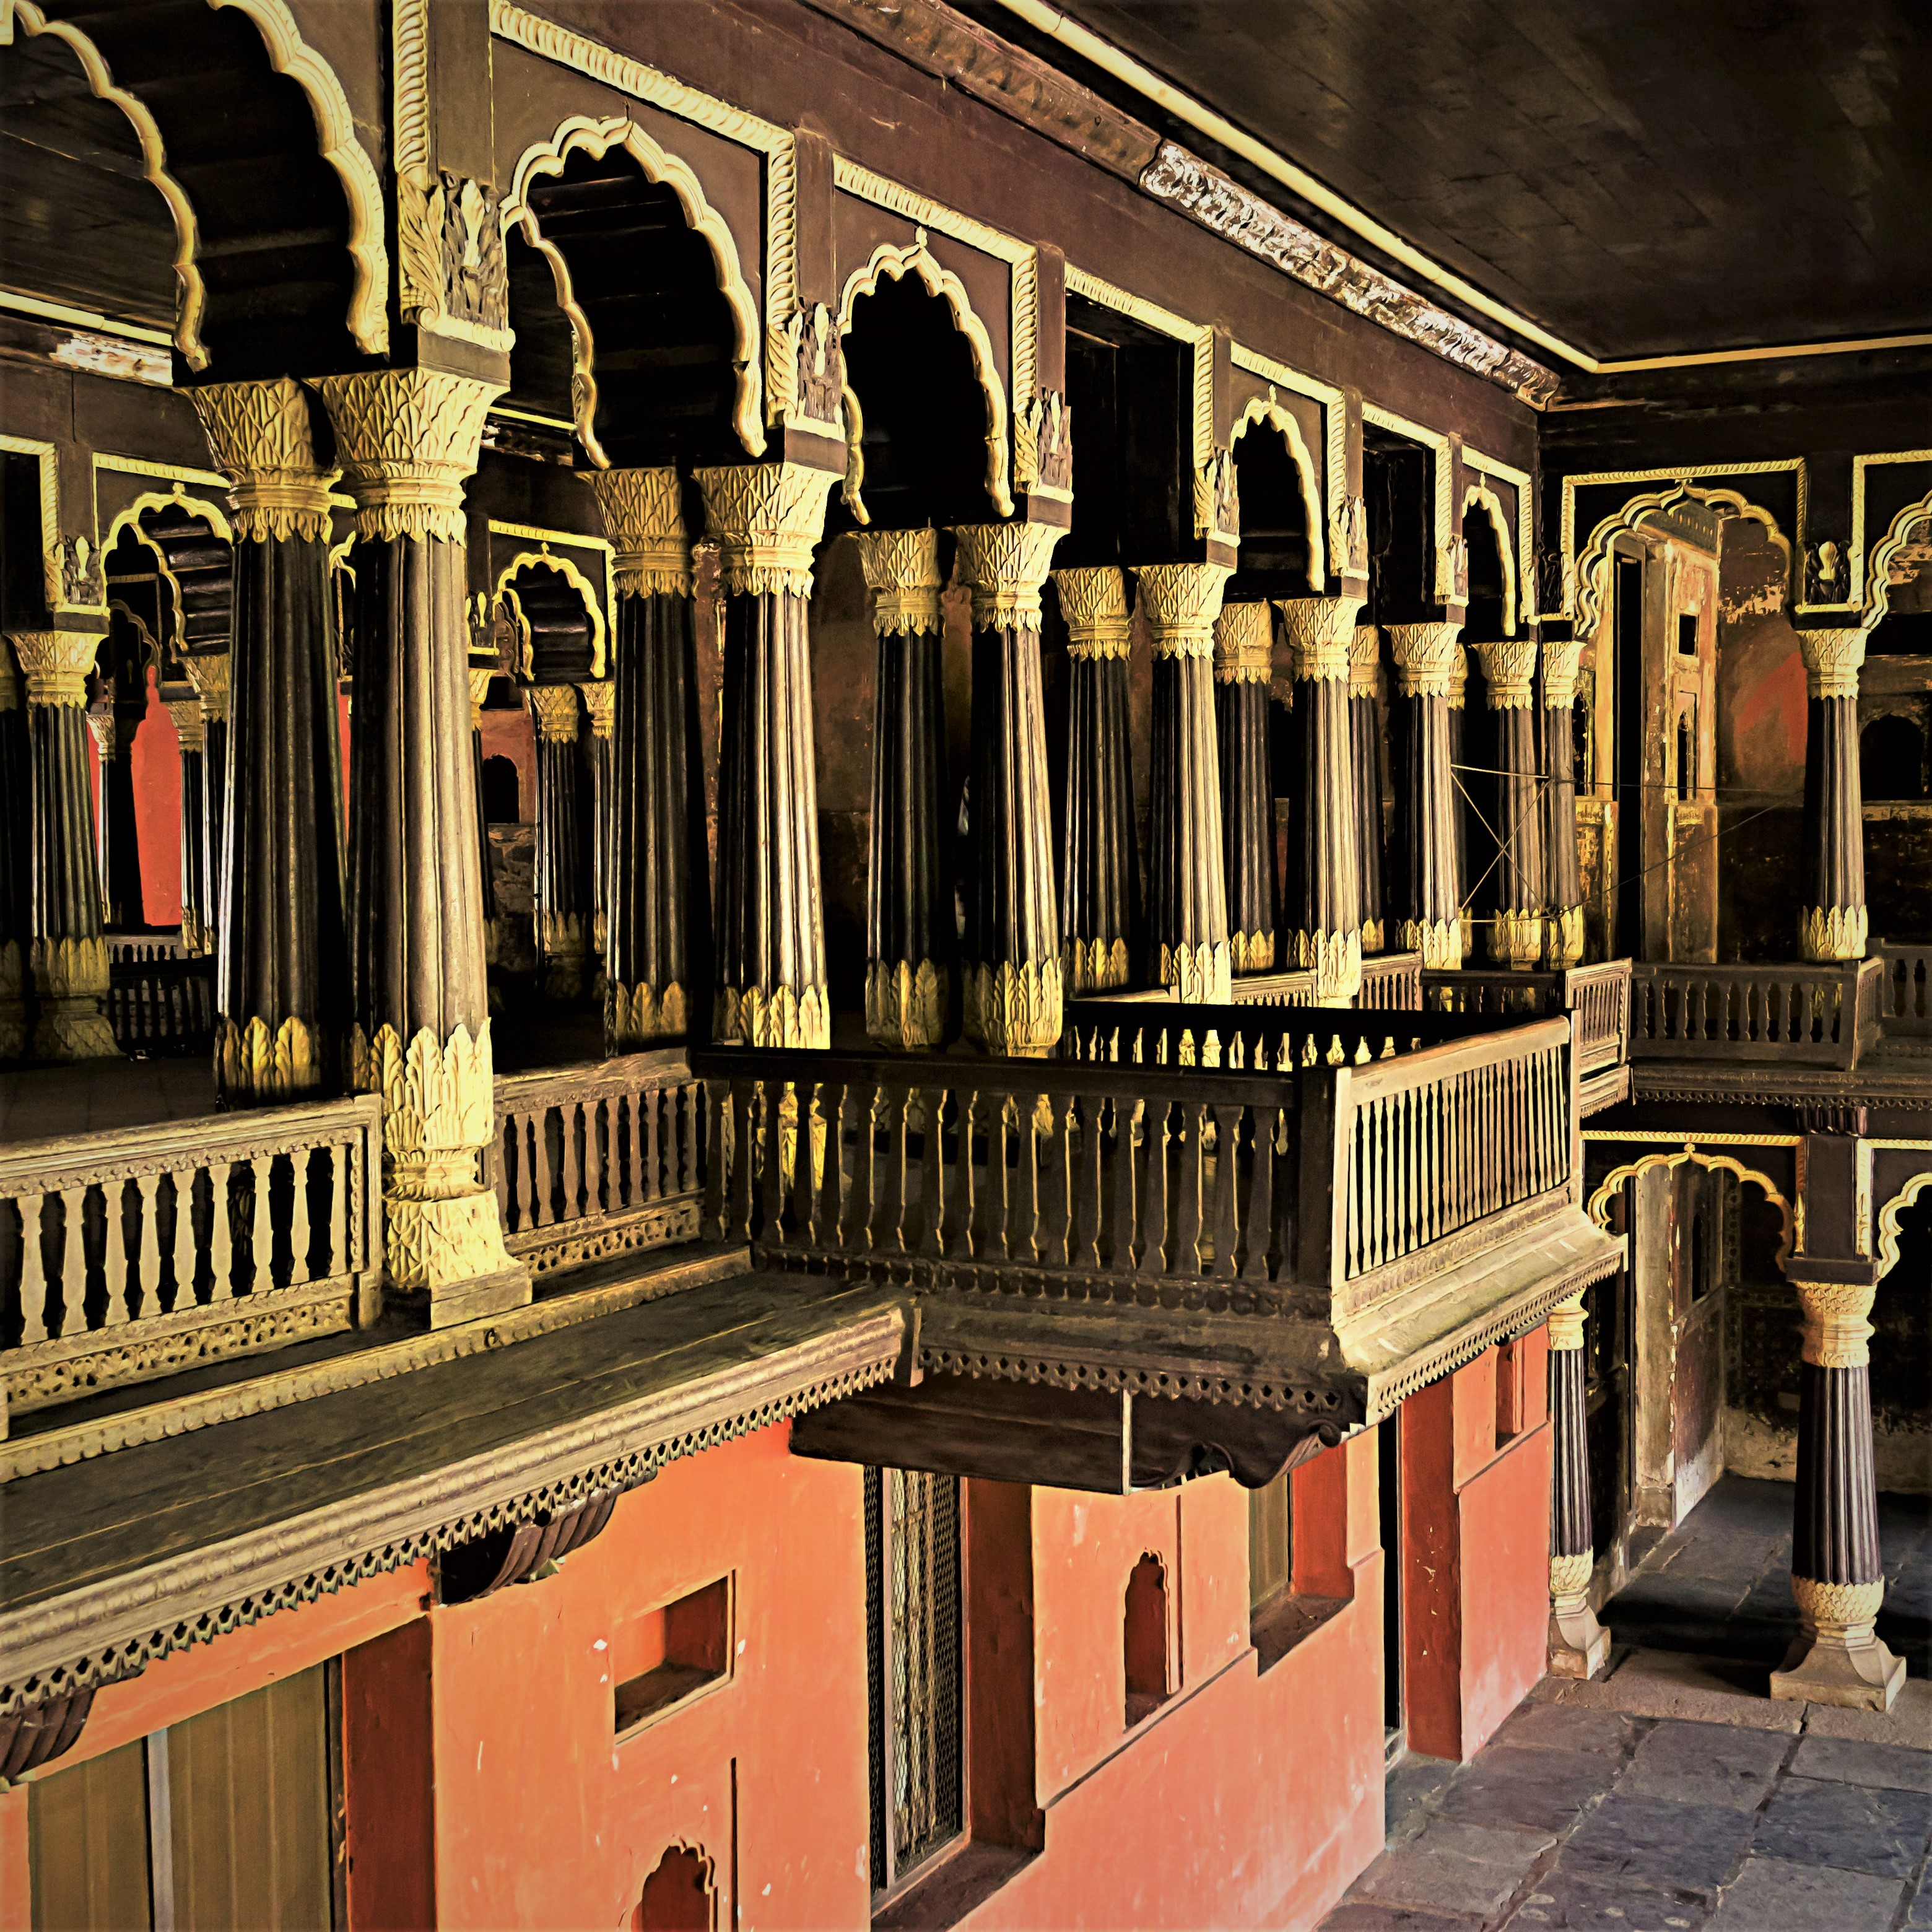 Tippu Sultan's Summer Palace and Bangalore Fort